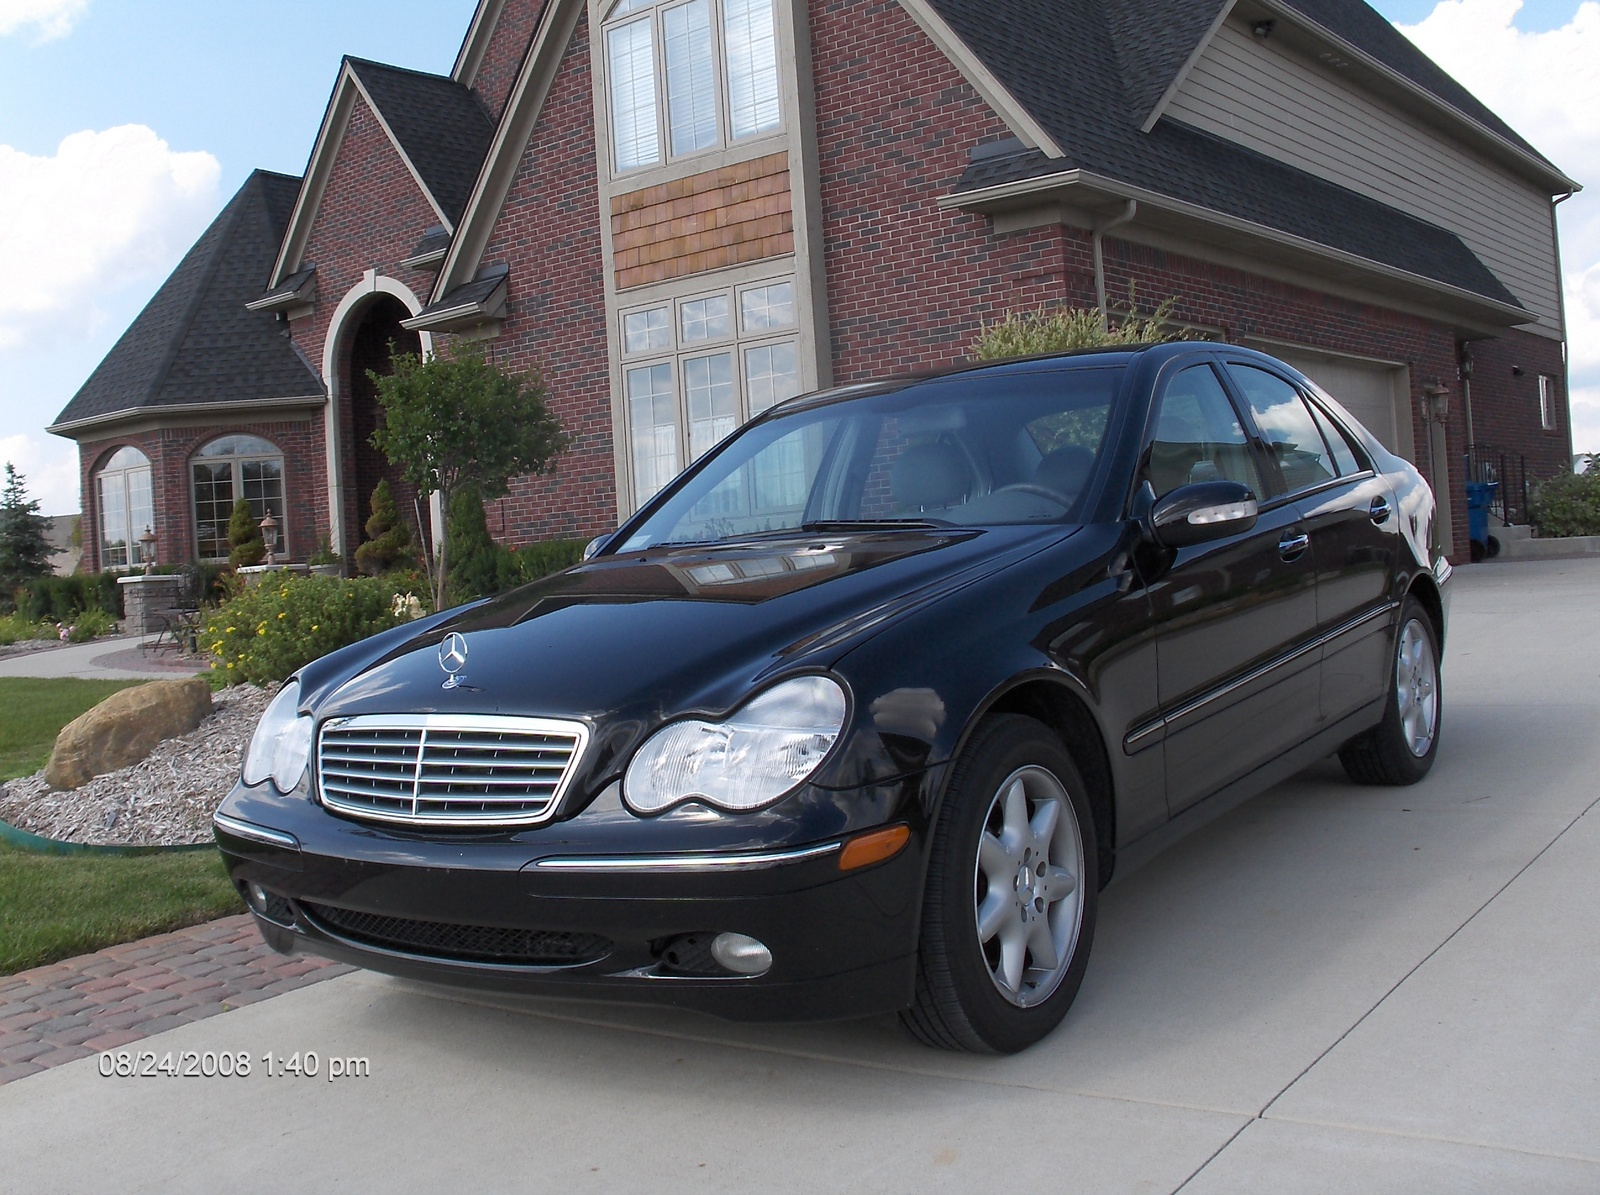 2004 mercedes benz c class exterior pictures cargurus for 2004 mercedes benz